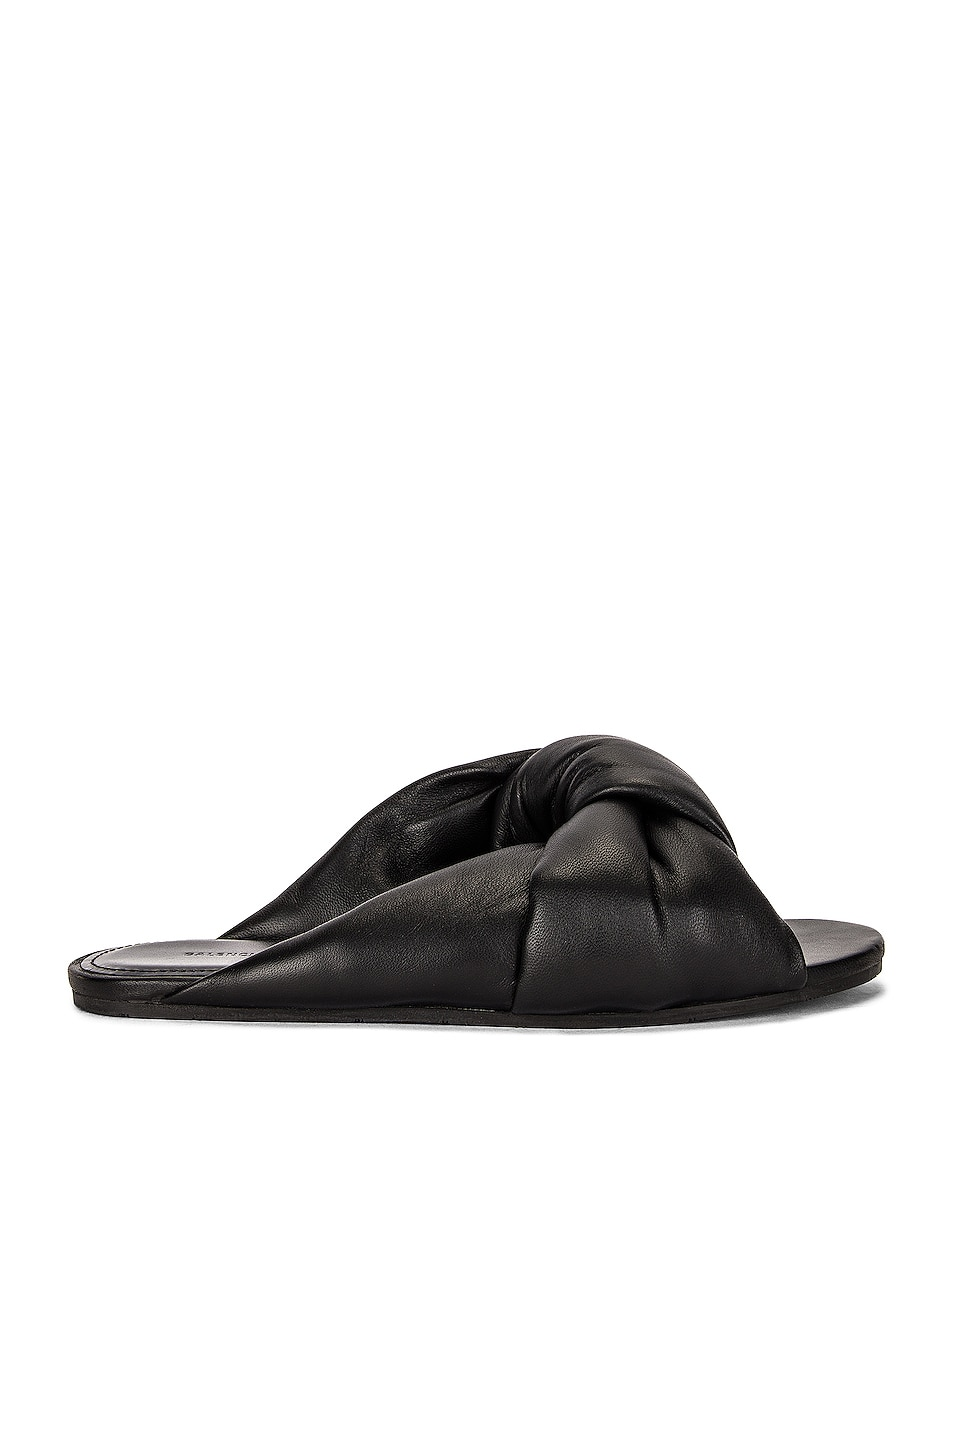 Drapy Sandals by BALENCIAGA, available on fwrd.com for $650 Olivia Culpo Shoes Exact Product